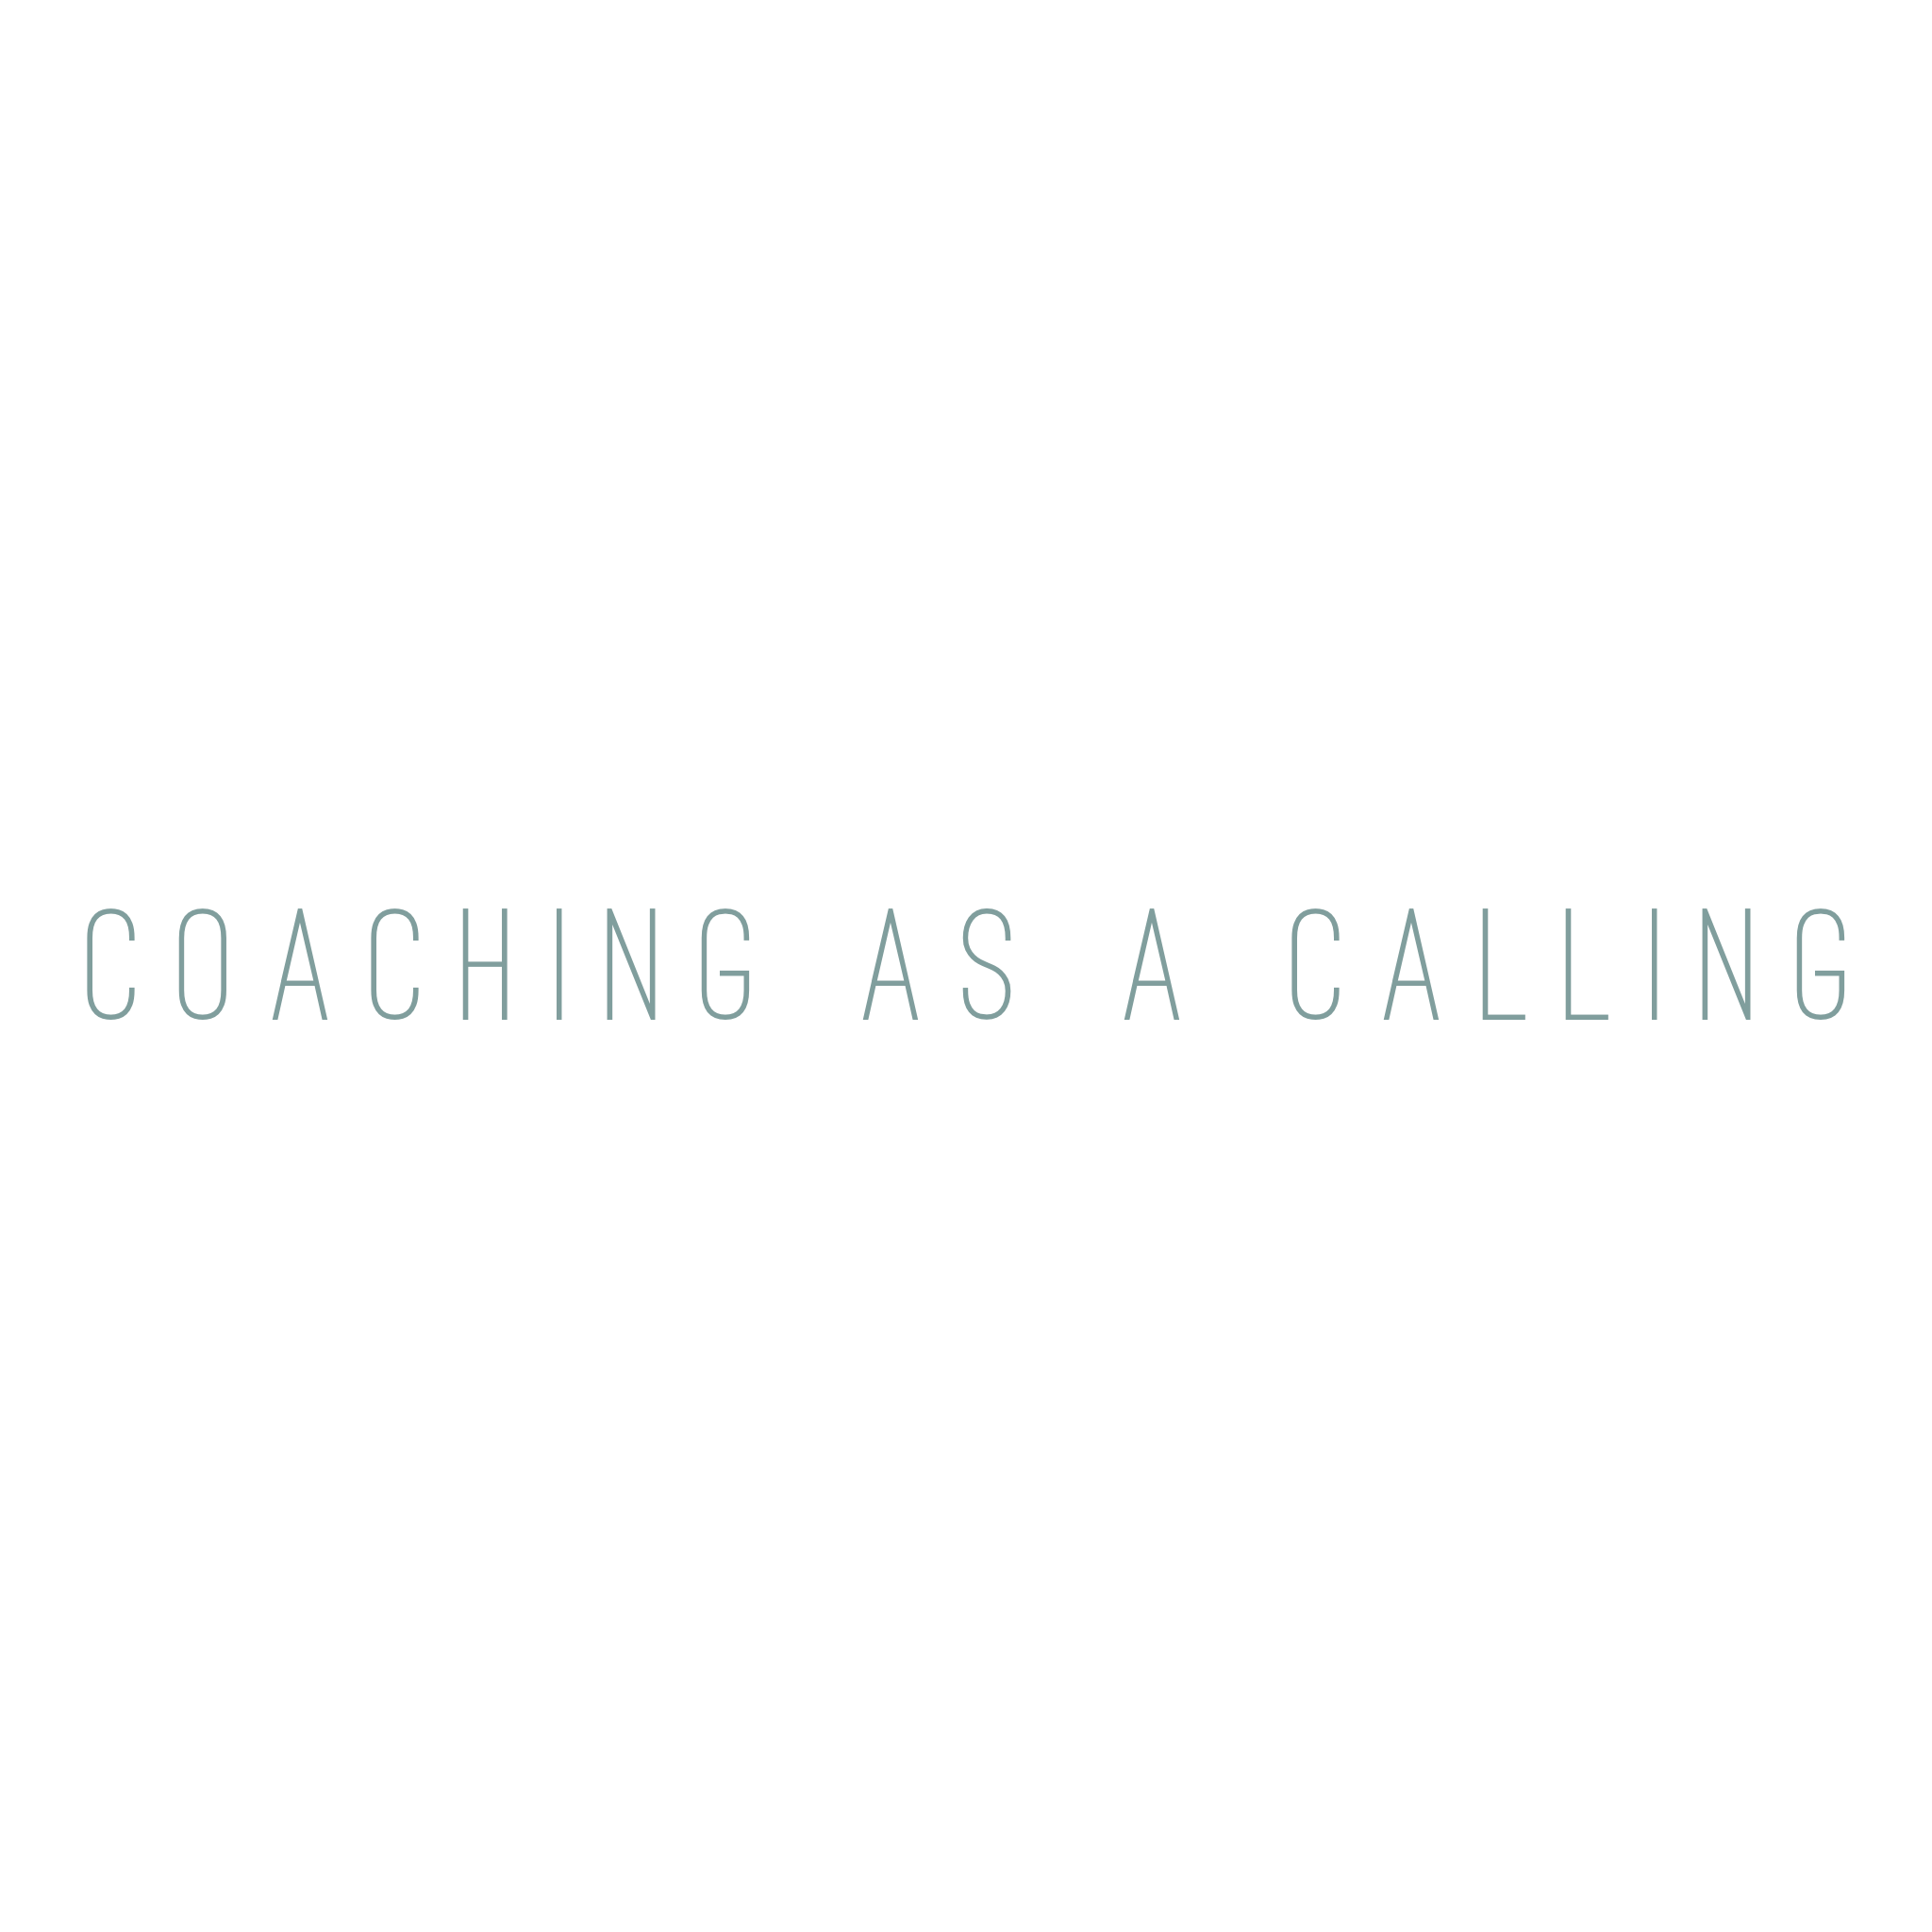 Coaching as a Calling Logo - Transparent Bkgd.PNG